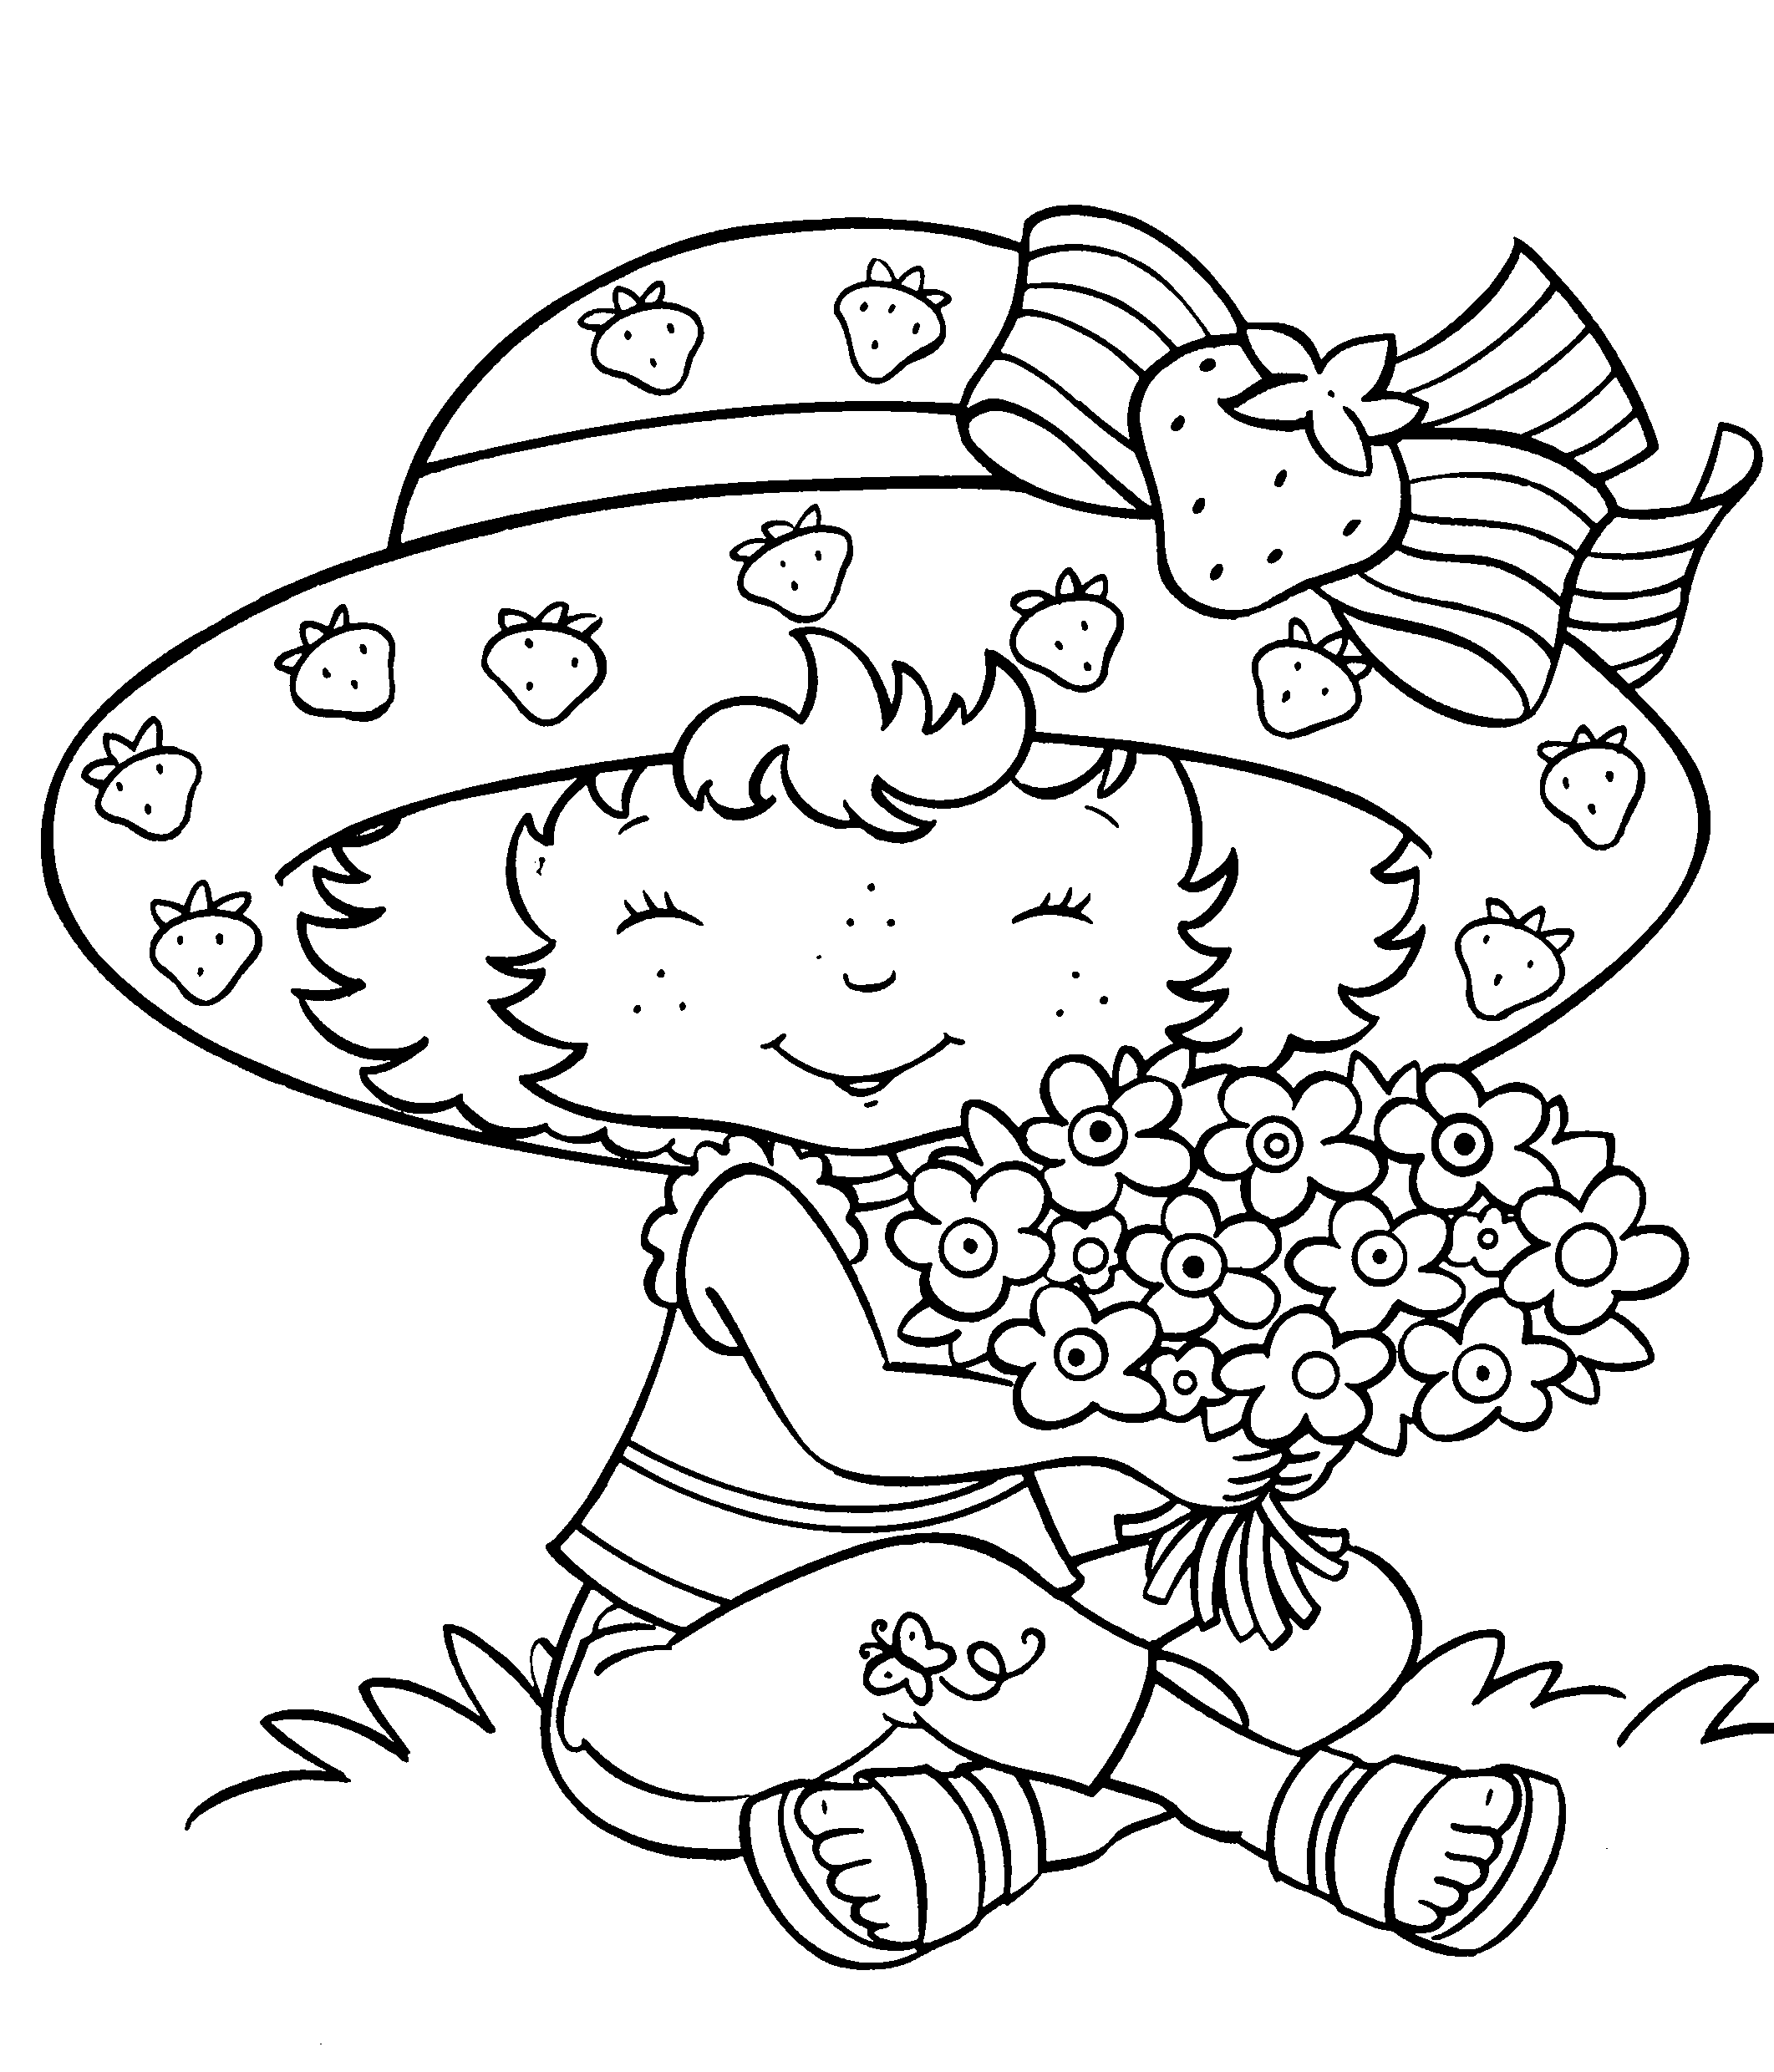 Download Strawberry Shortcake Coloring Pages